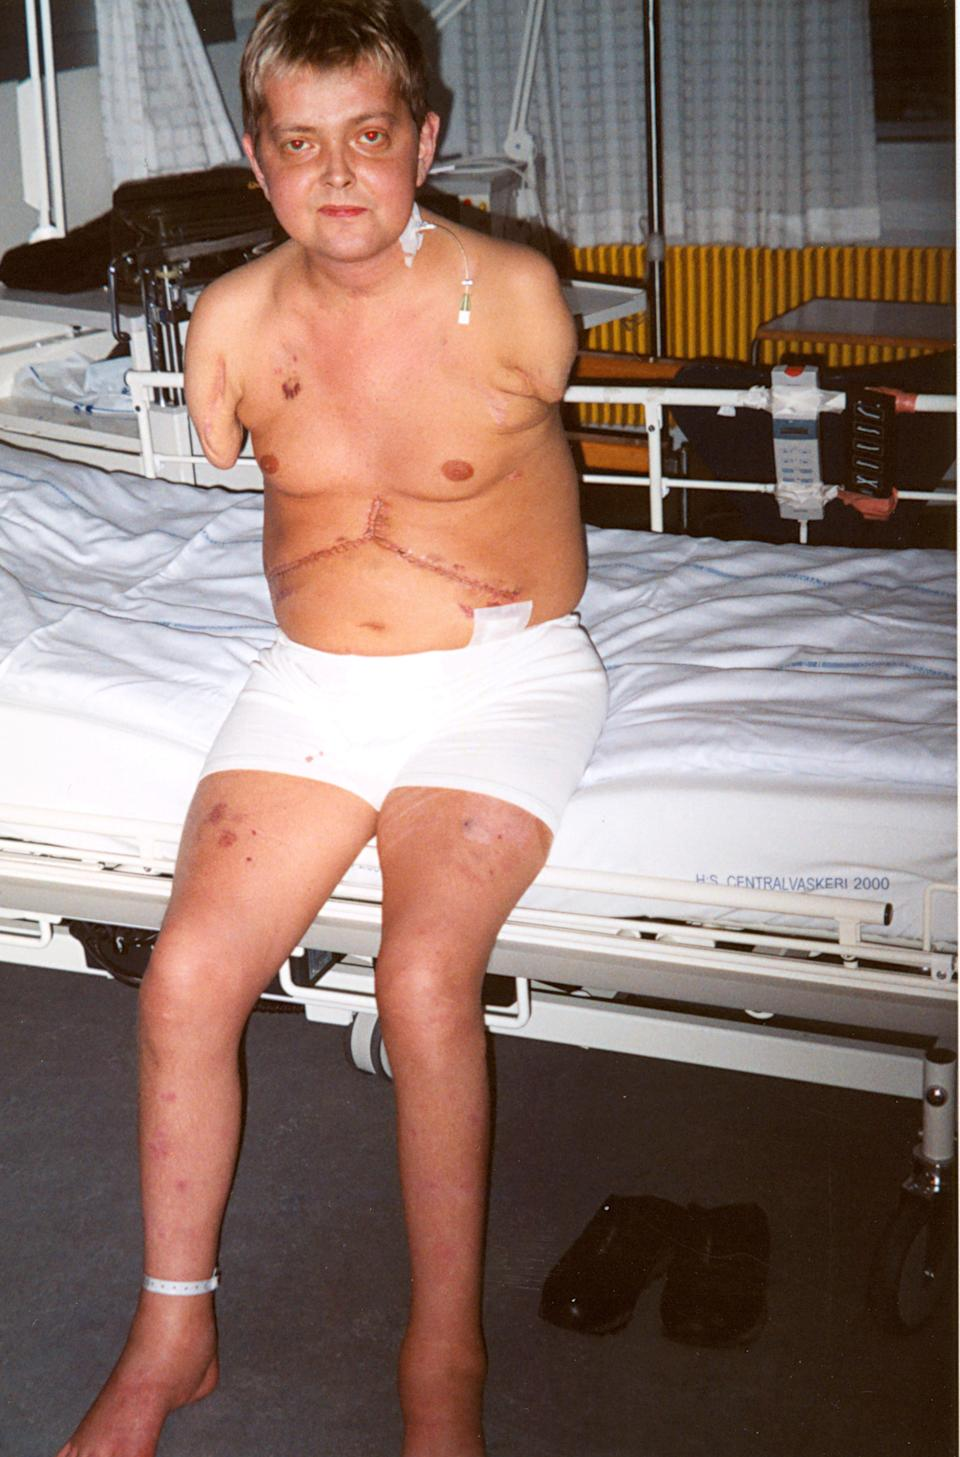 The father-of-two yearned for his missing arms for years. (SWNS)